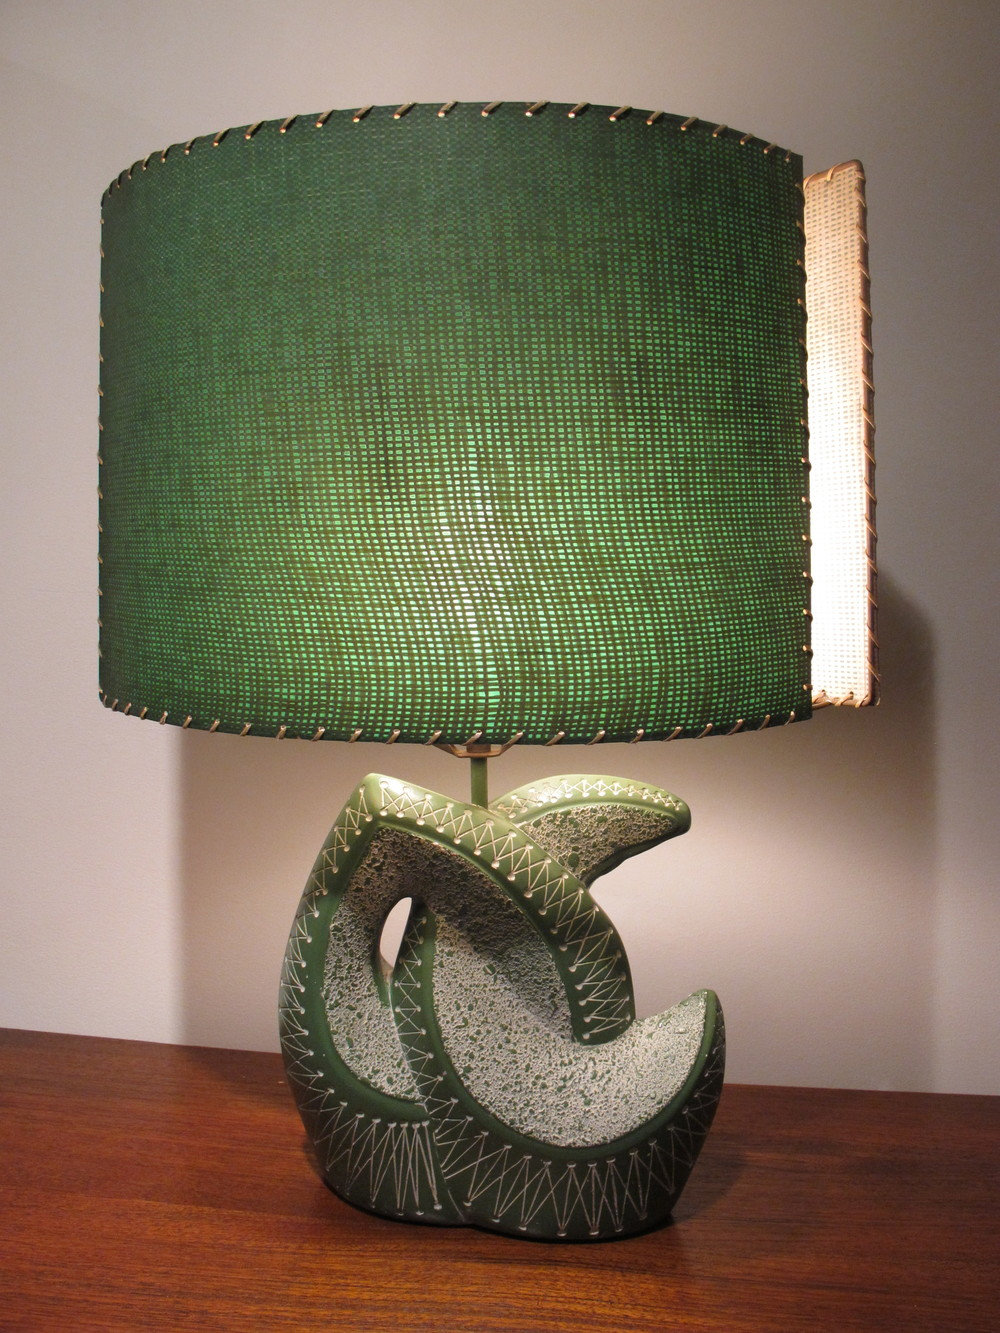 UNDULATING GREEN AND WHITE ATOMIC CHALKWARE LAMP BY F.A.I.P.